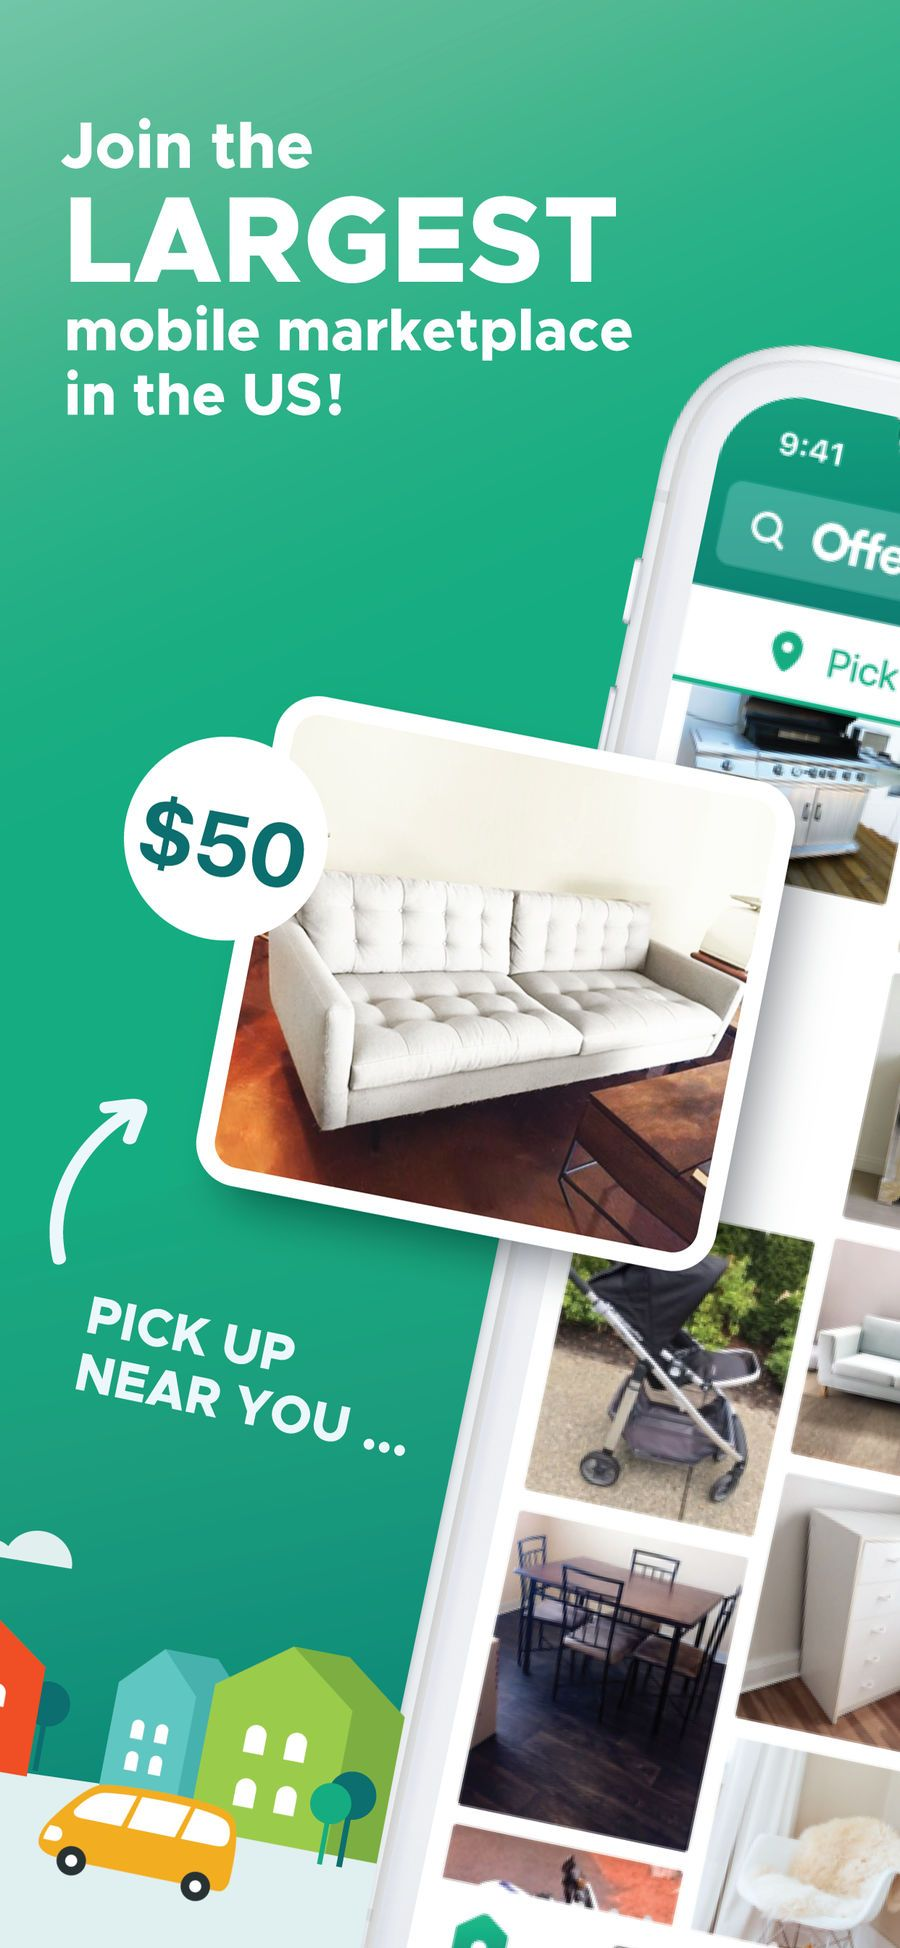 ‎OfferUp Buy. Sell. Simple. on the App Store Stuff to